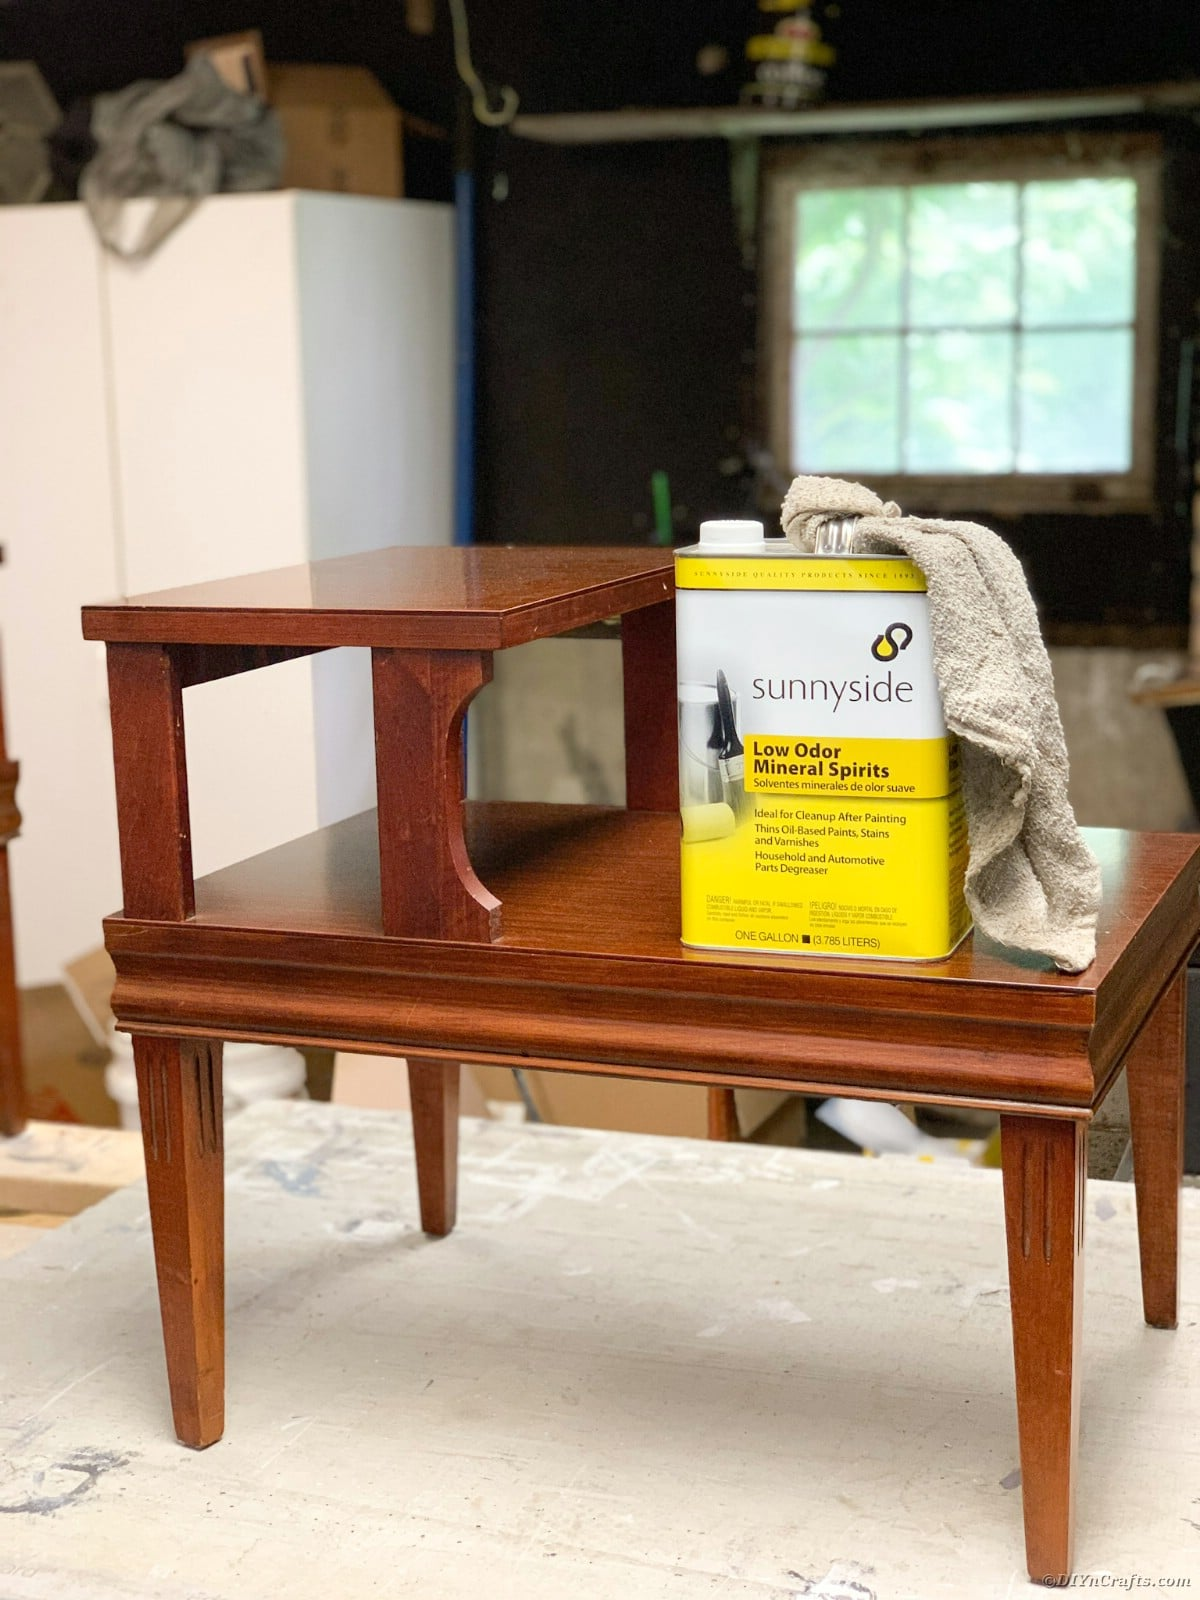 Wiping table with mineral spirits